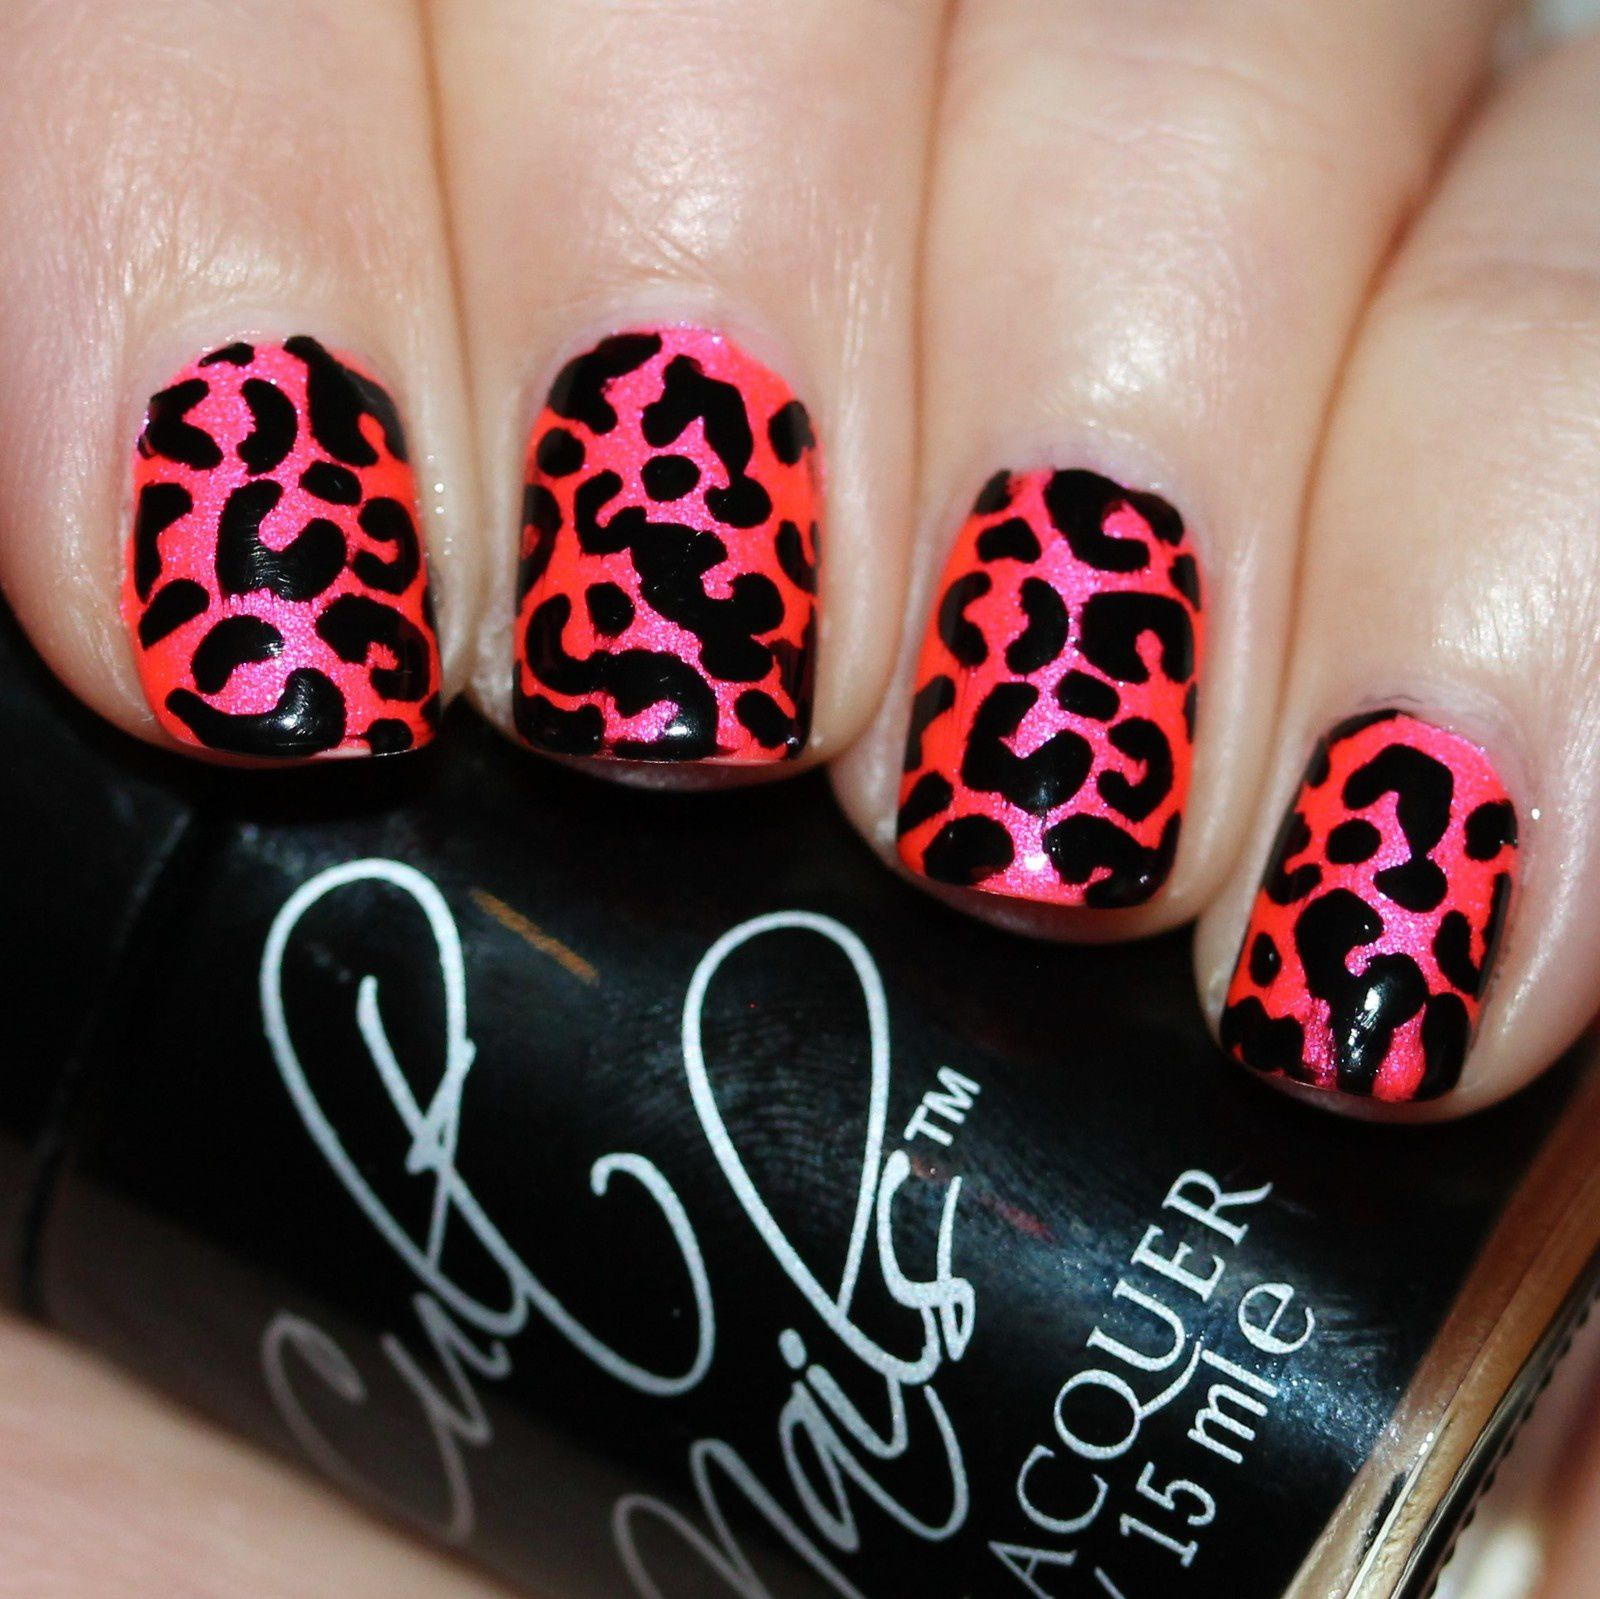 Essie Fill The Gap Base Coat / Tonic Polish Passion Fruit / Essie Gel Top Coat / Leopard stencils with Cult Nails Nevermore / Poshe Top Coat